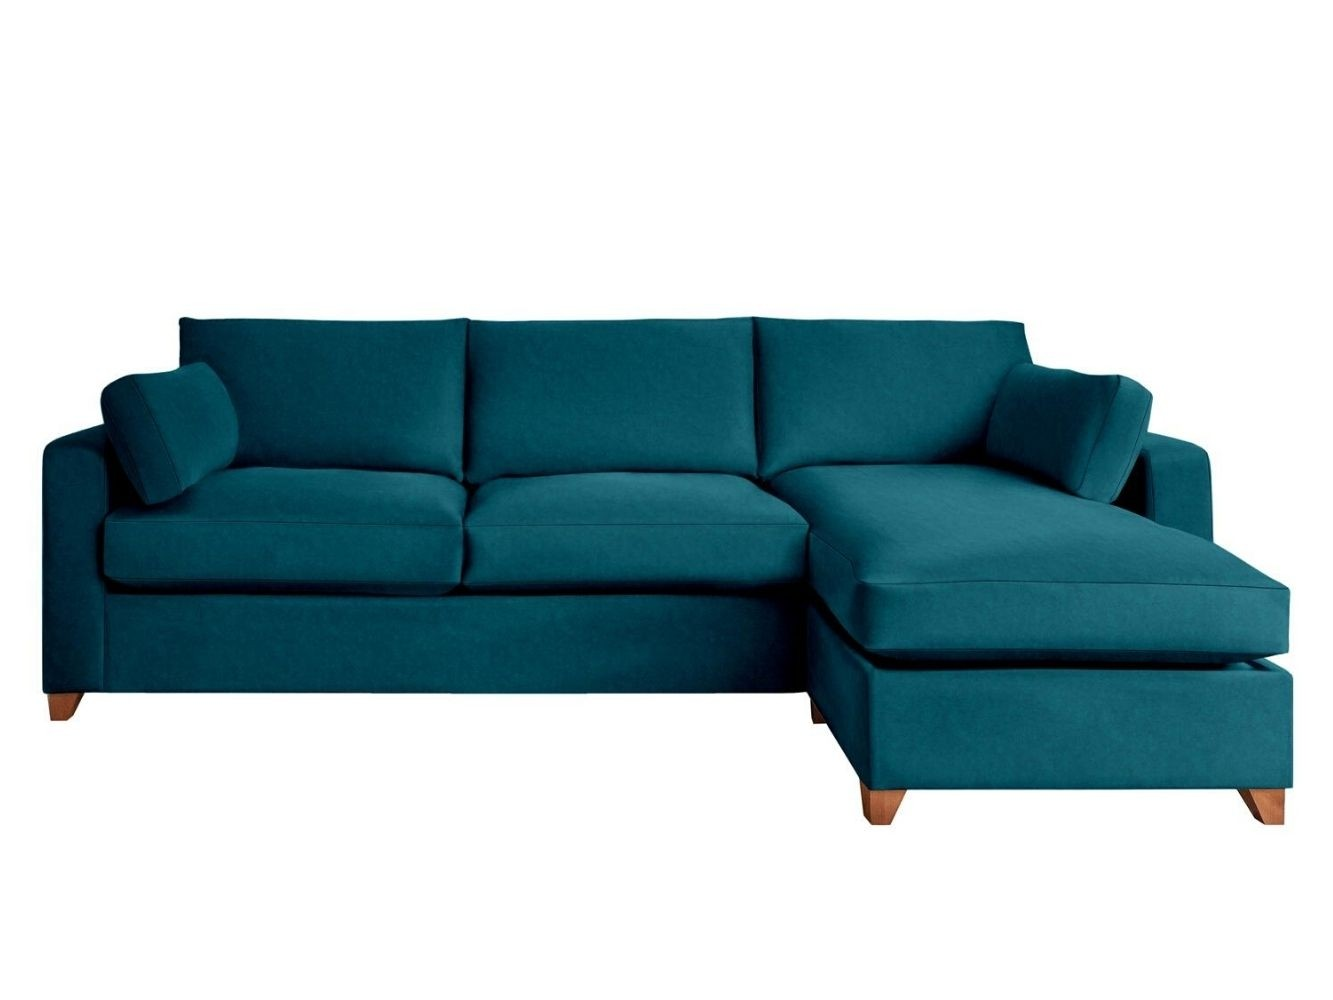 This is how I look in Cotton Velvet Celadon with feather-wrapped foam seat cushions